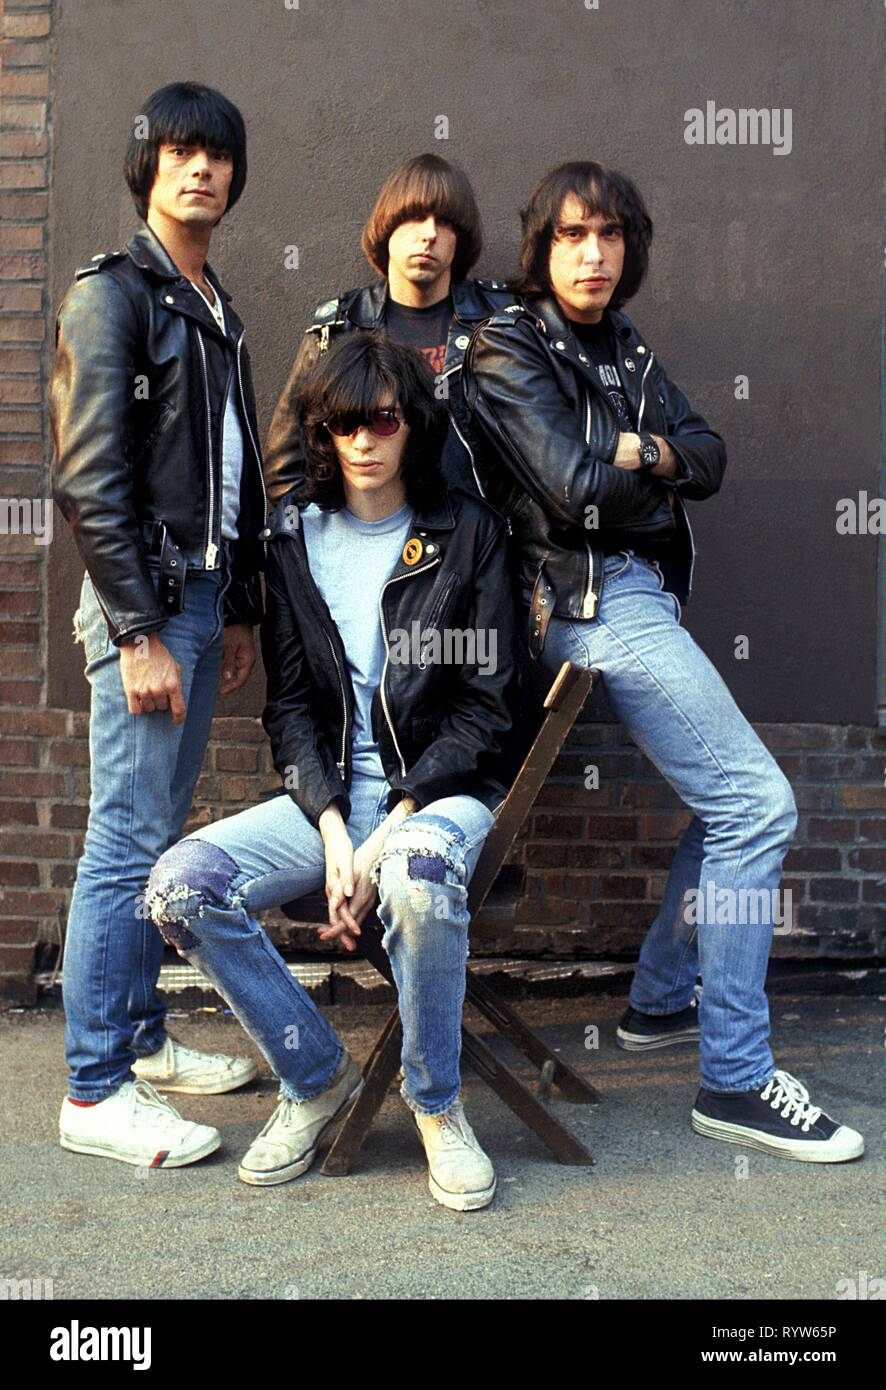 Members of the American rock band Les Ramones after the shooting of the German TV show Musikladen. From left to right: Dee Dee Dee Ramone, Joey Ramone, Johnny Ramone, Marky Ramone. Bremen, 10 September 1978 - Stock Image